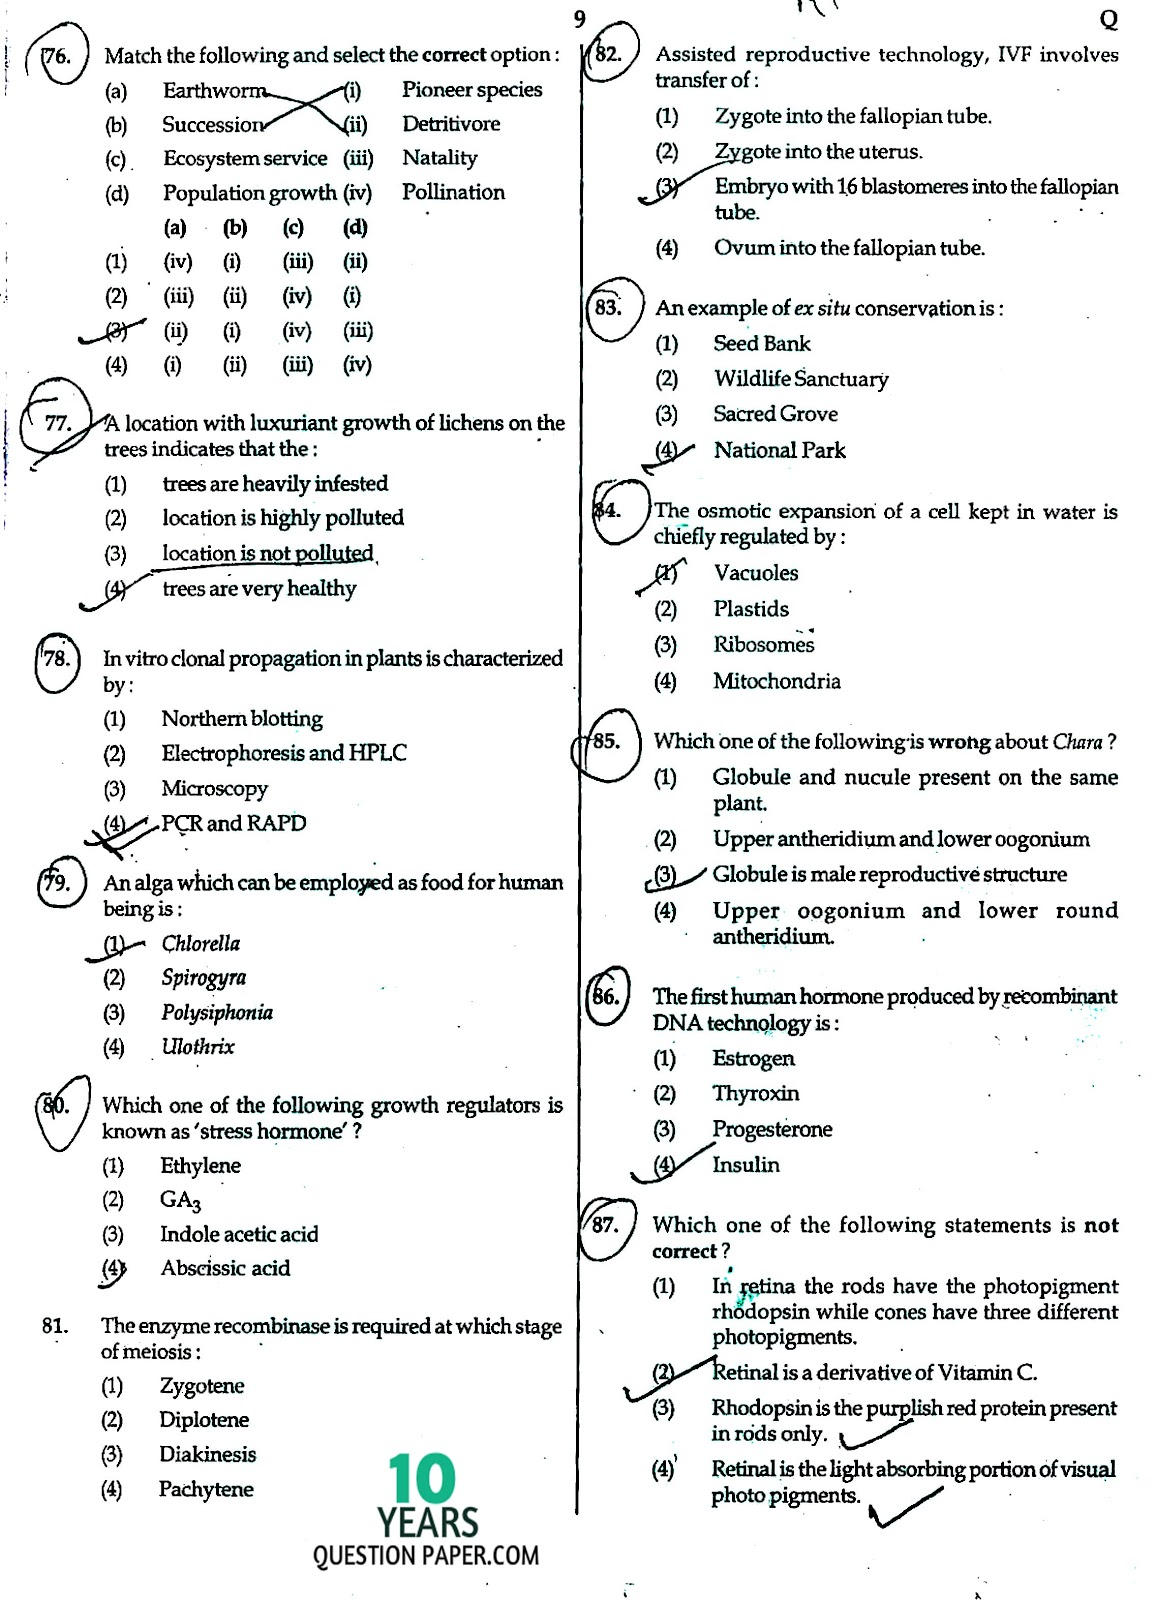 CBSE NEET 2014 question paper